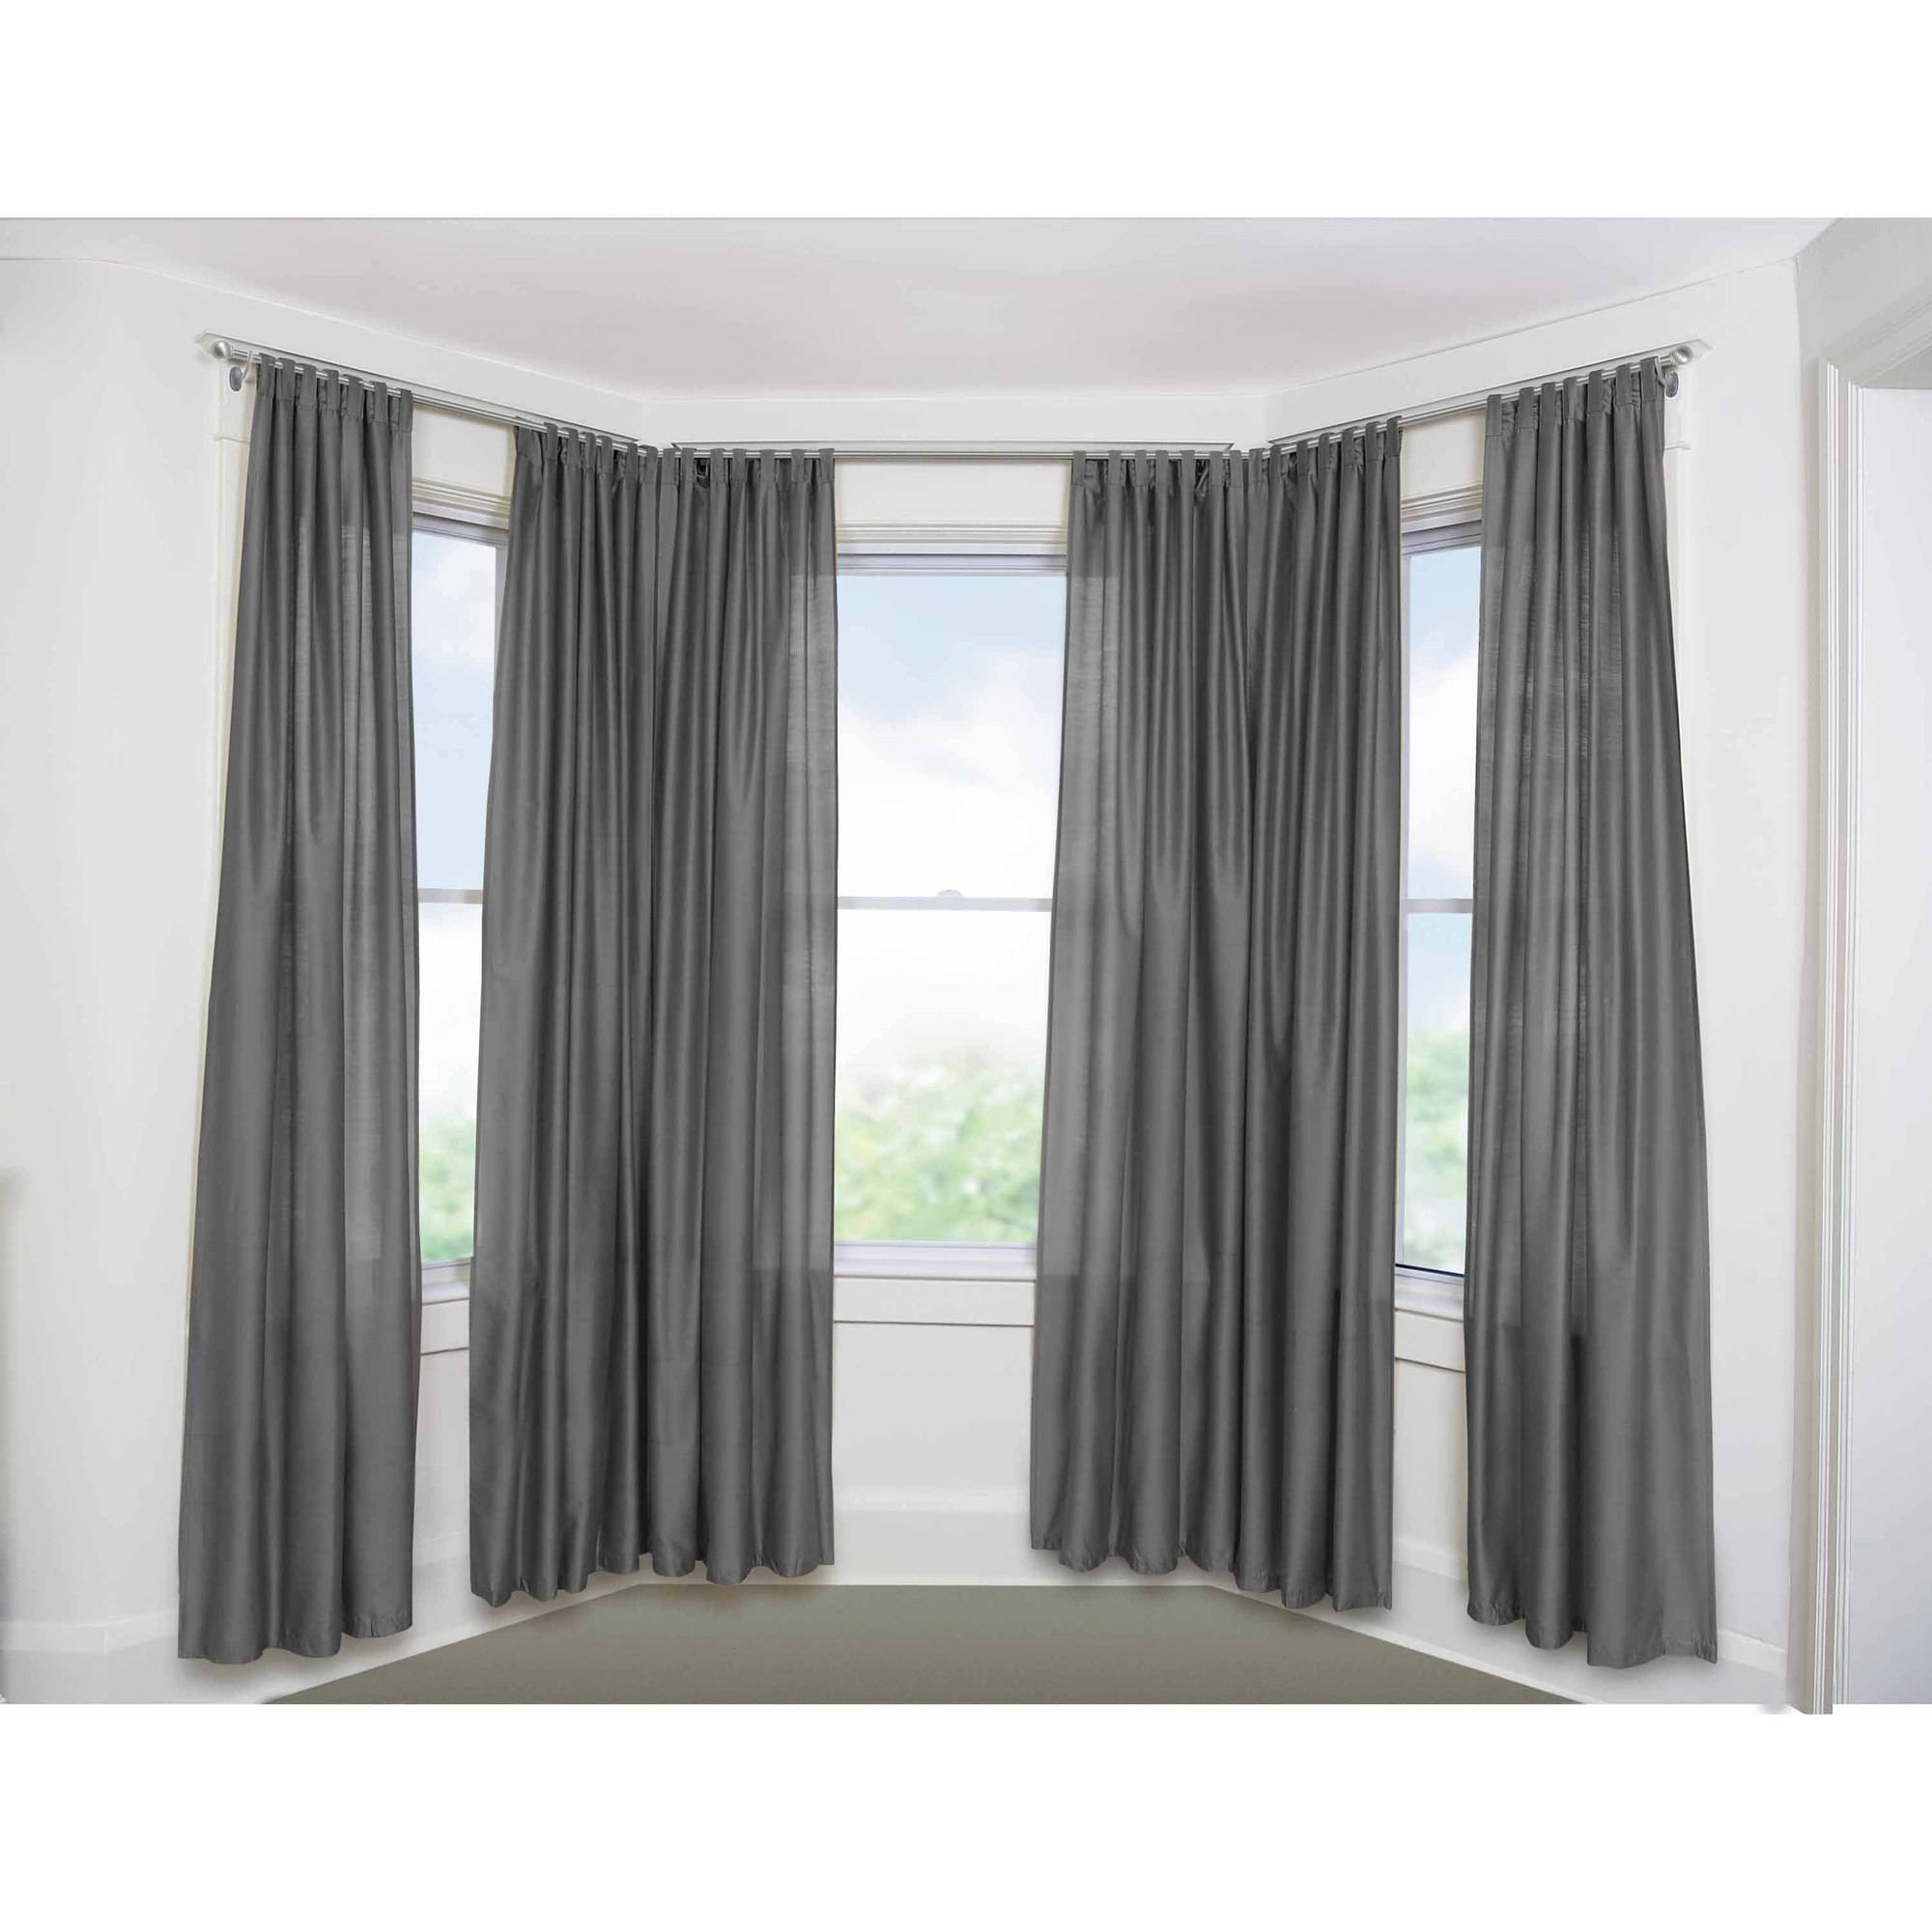 bow window curtain rods rooms bay windows curtain rods www galleryhip com the